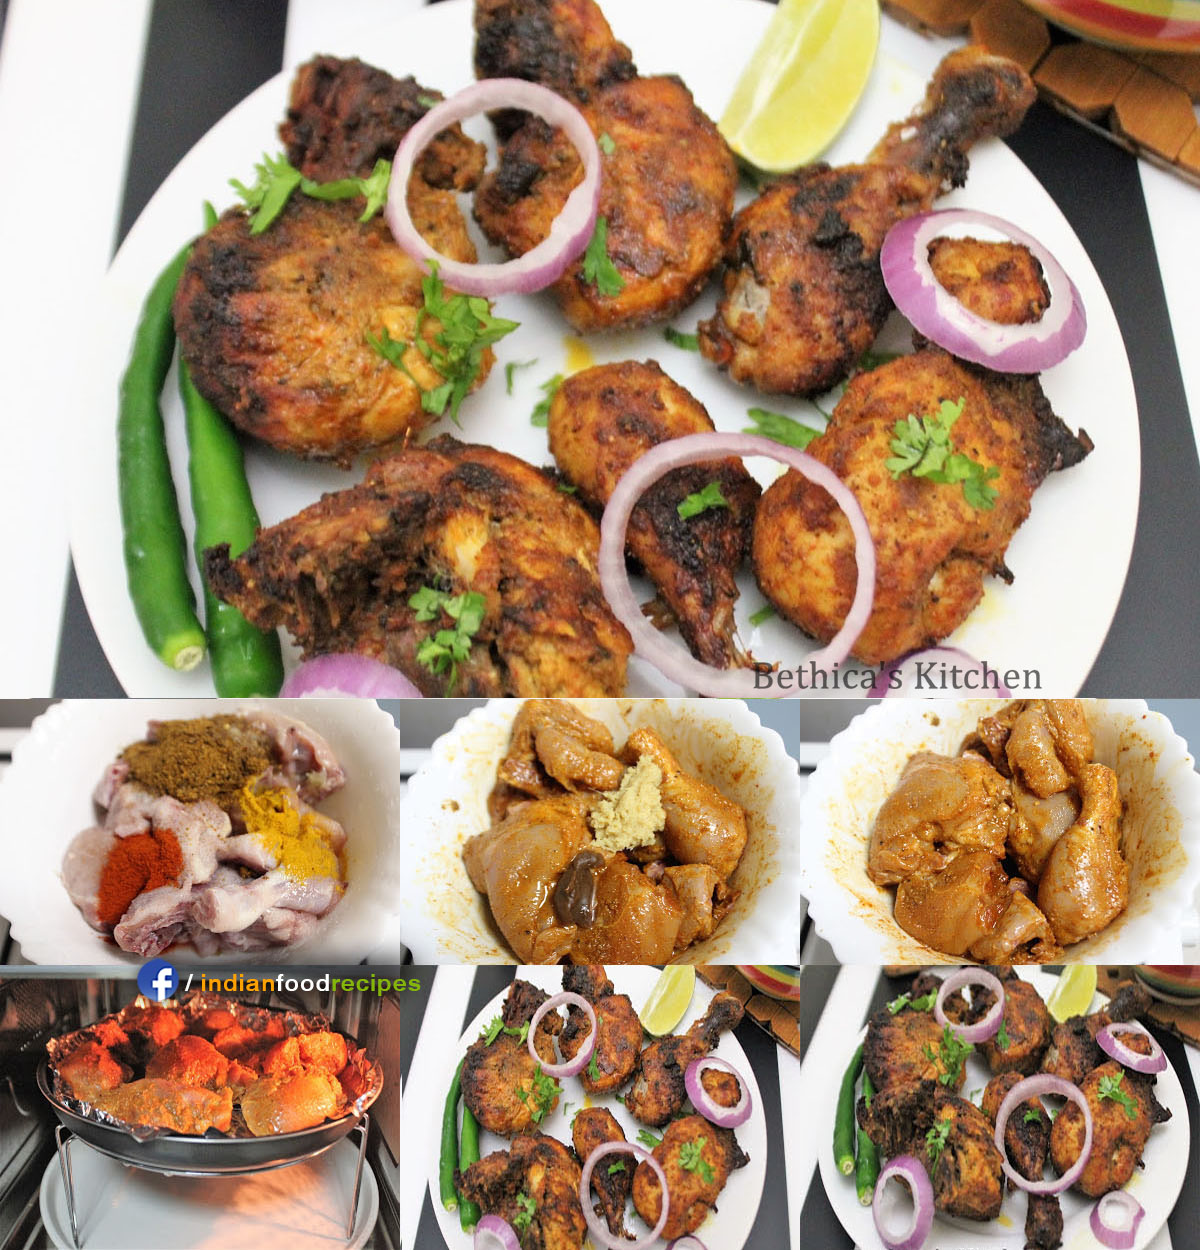 Chettinad Flavoured Grilled Chicken recipe step by step pictures